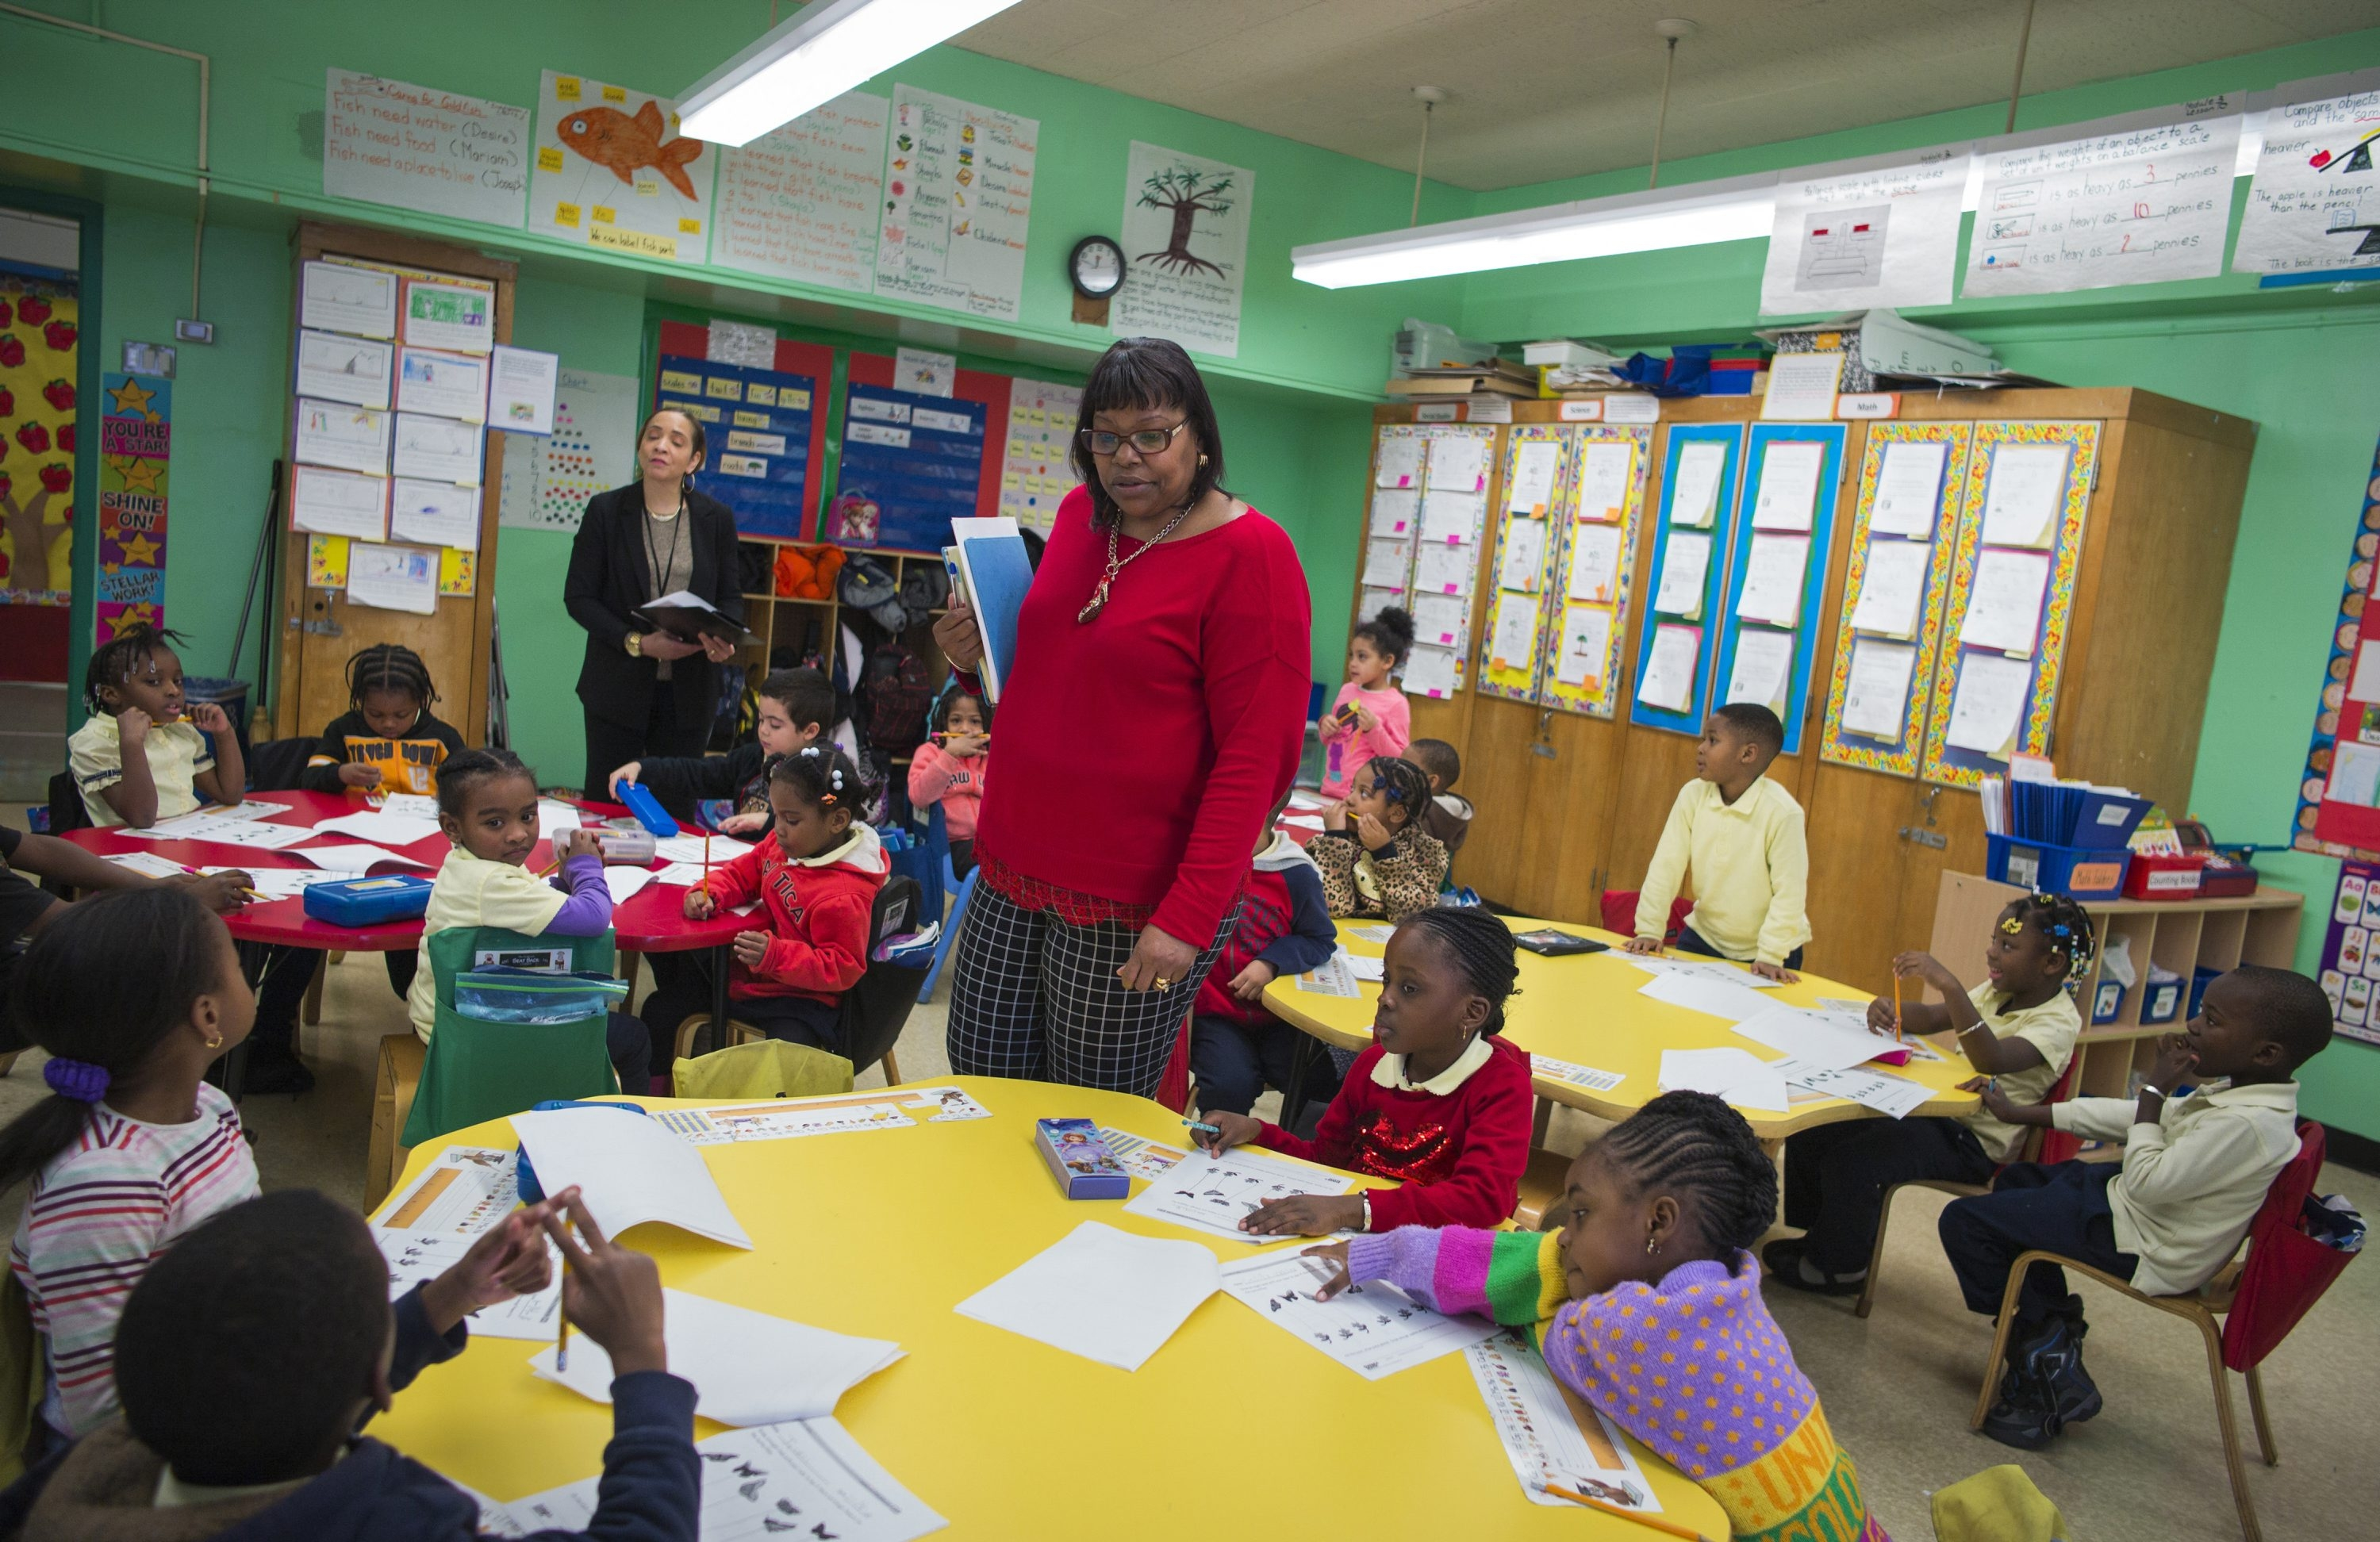 Debra Jones, principal of the Urban Scholars Community School, visits a kindergarten classroom in New York City, where many of the children face significant challenges.